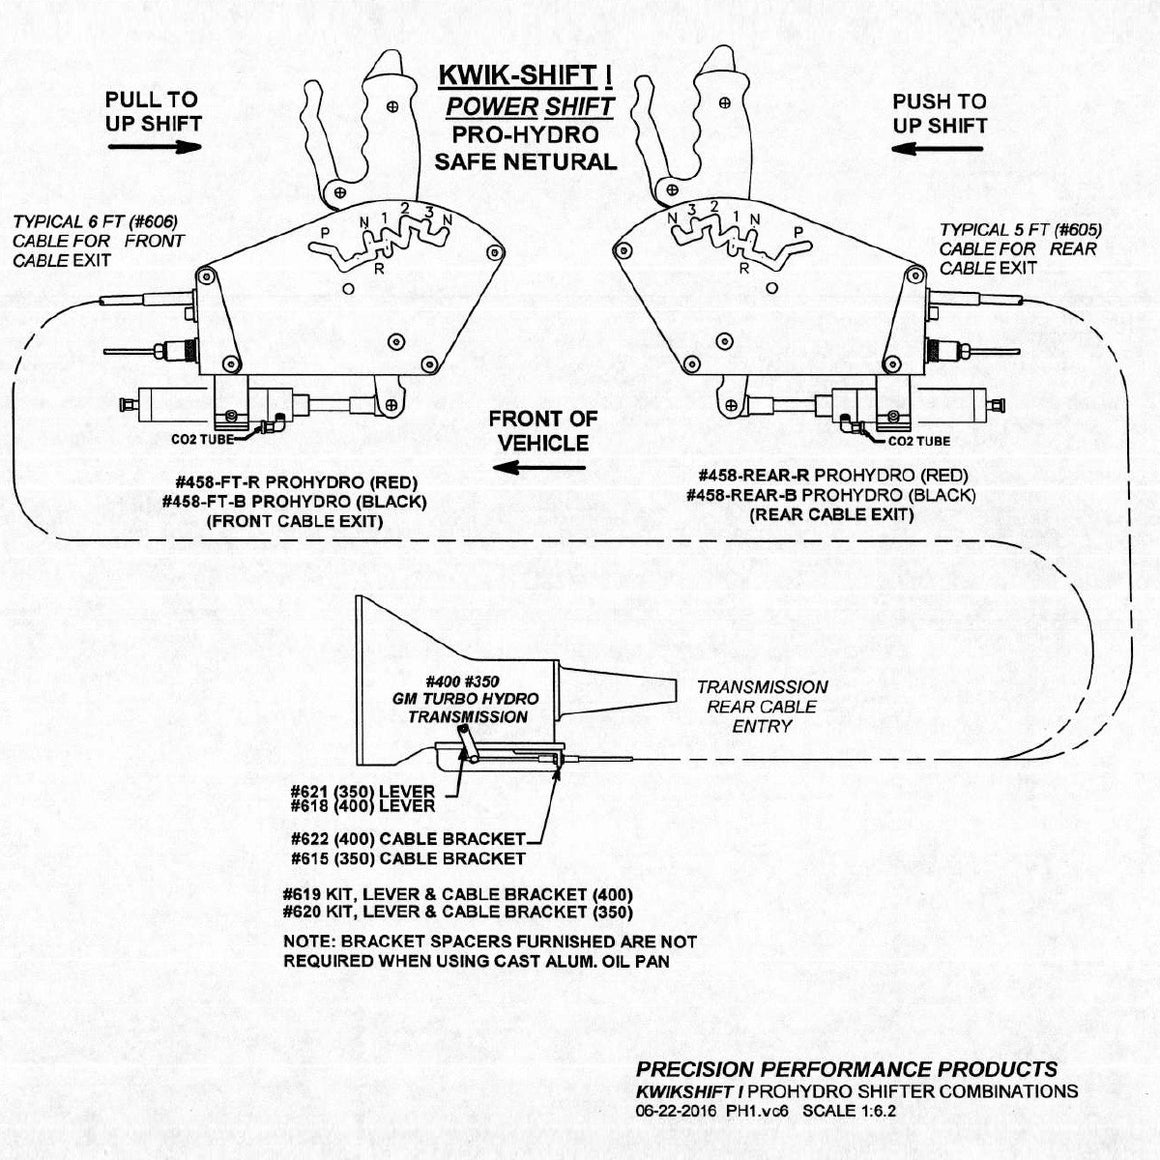 perfect turbo 400 transmission wiring diagram ornament electrical rh itseo info 4L60E Transmission Parts Diagram Chevy Manual Transmission Diagram